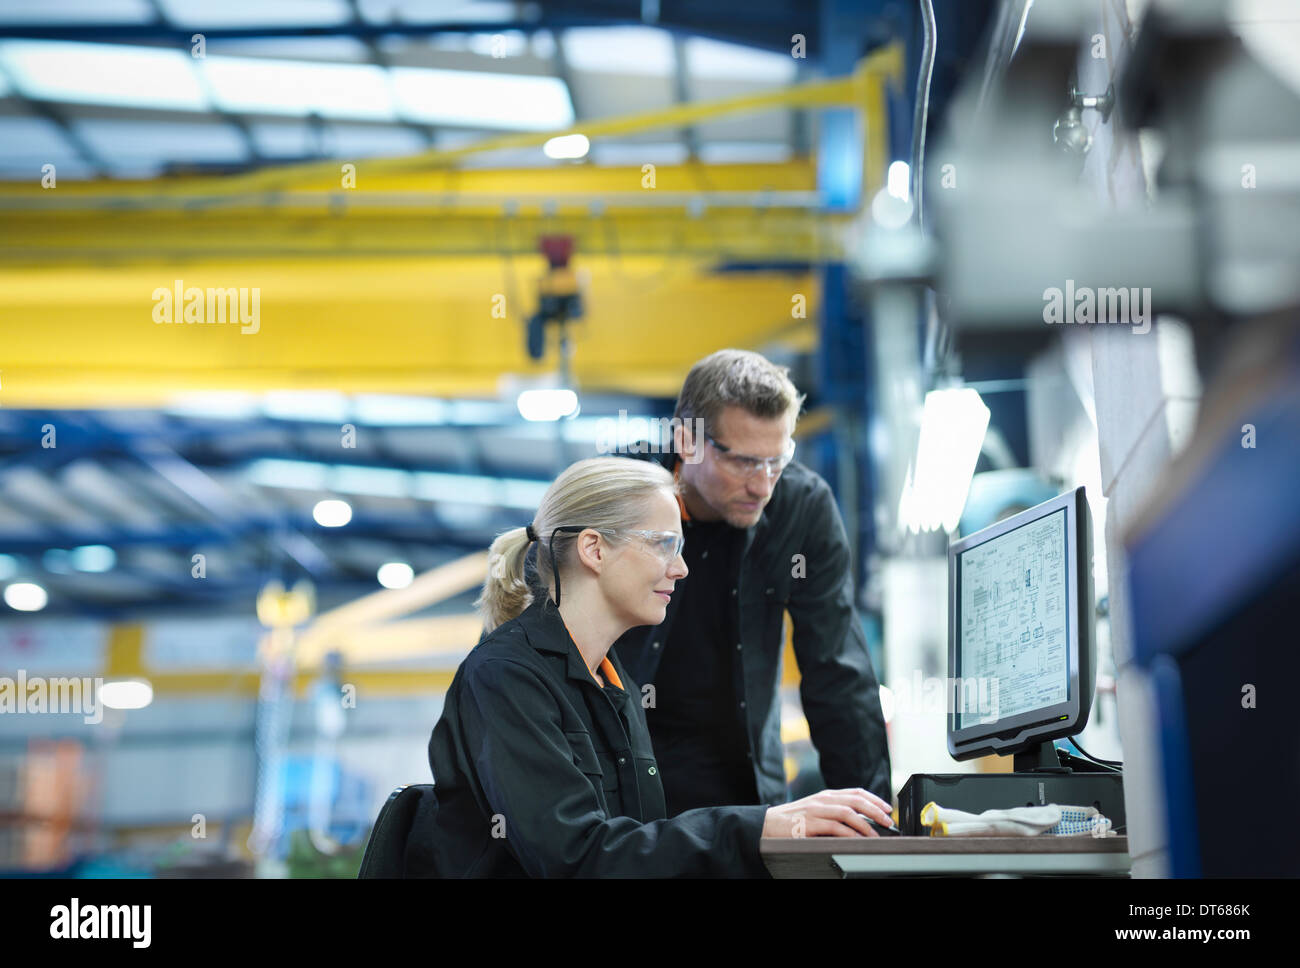 Engineers using computer to work on plans in engineering factory - Stock Image